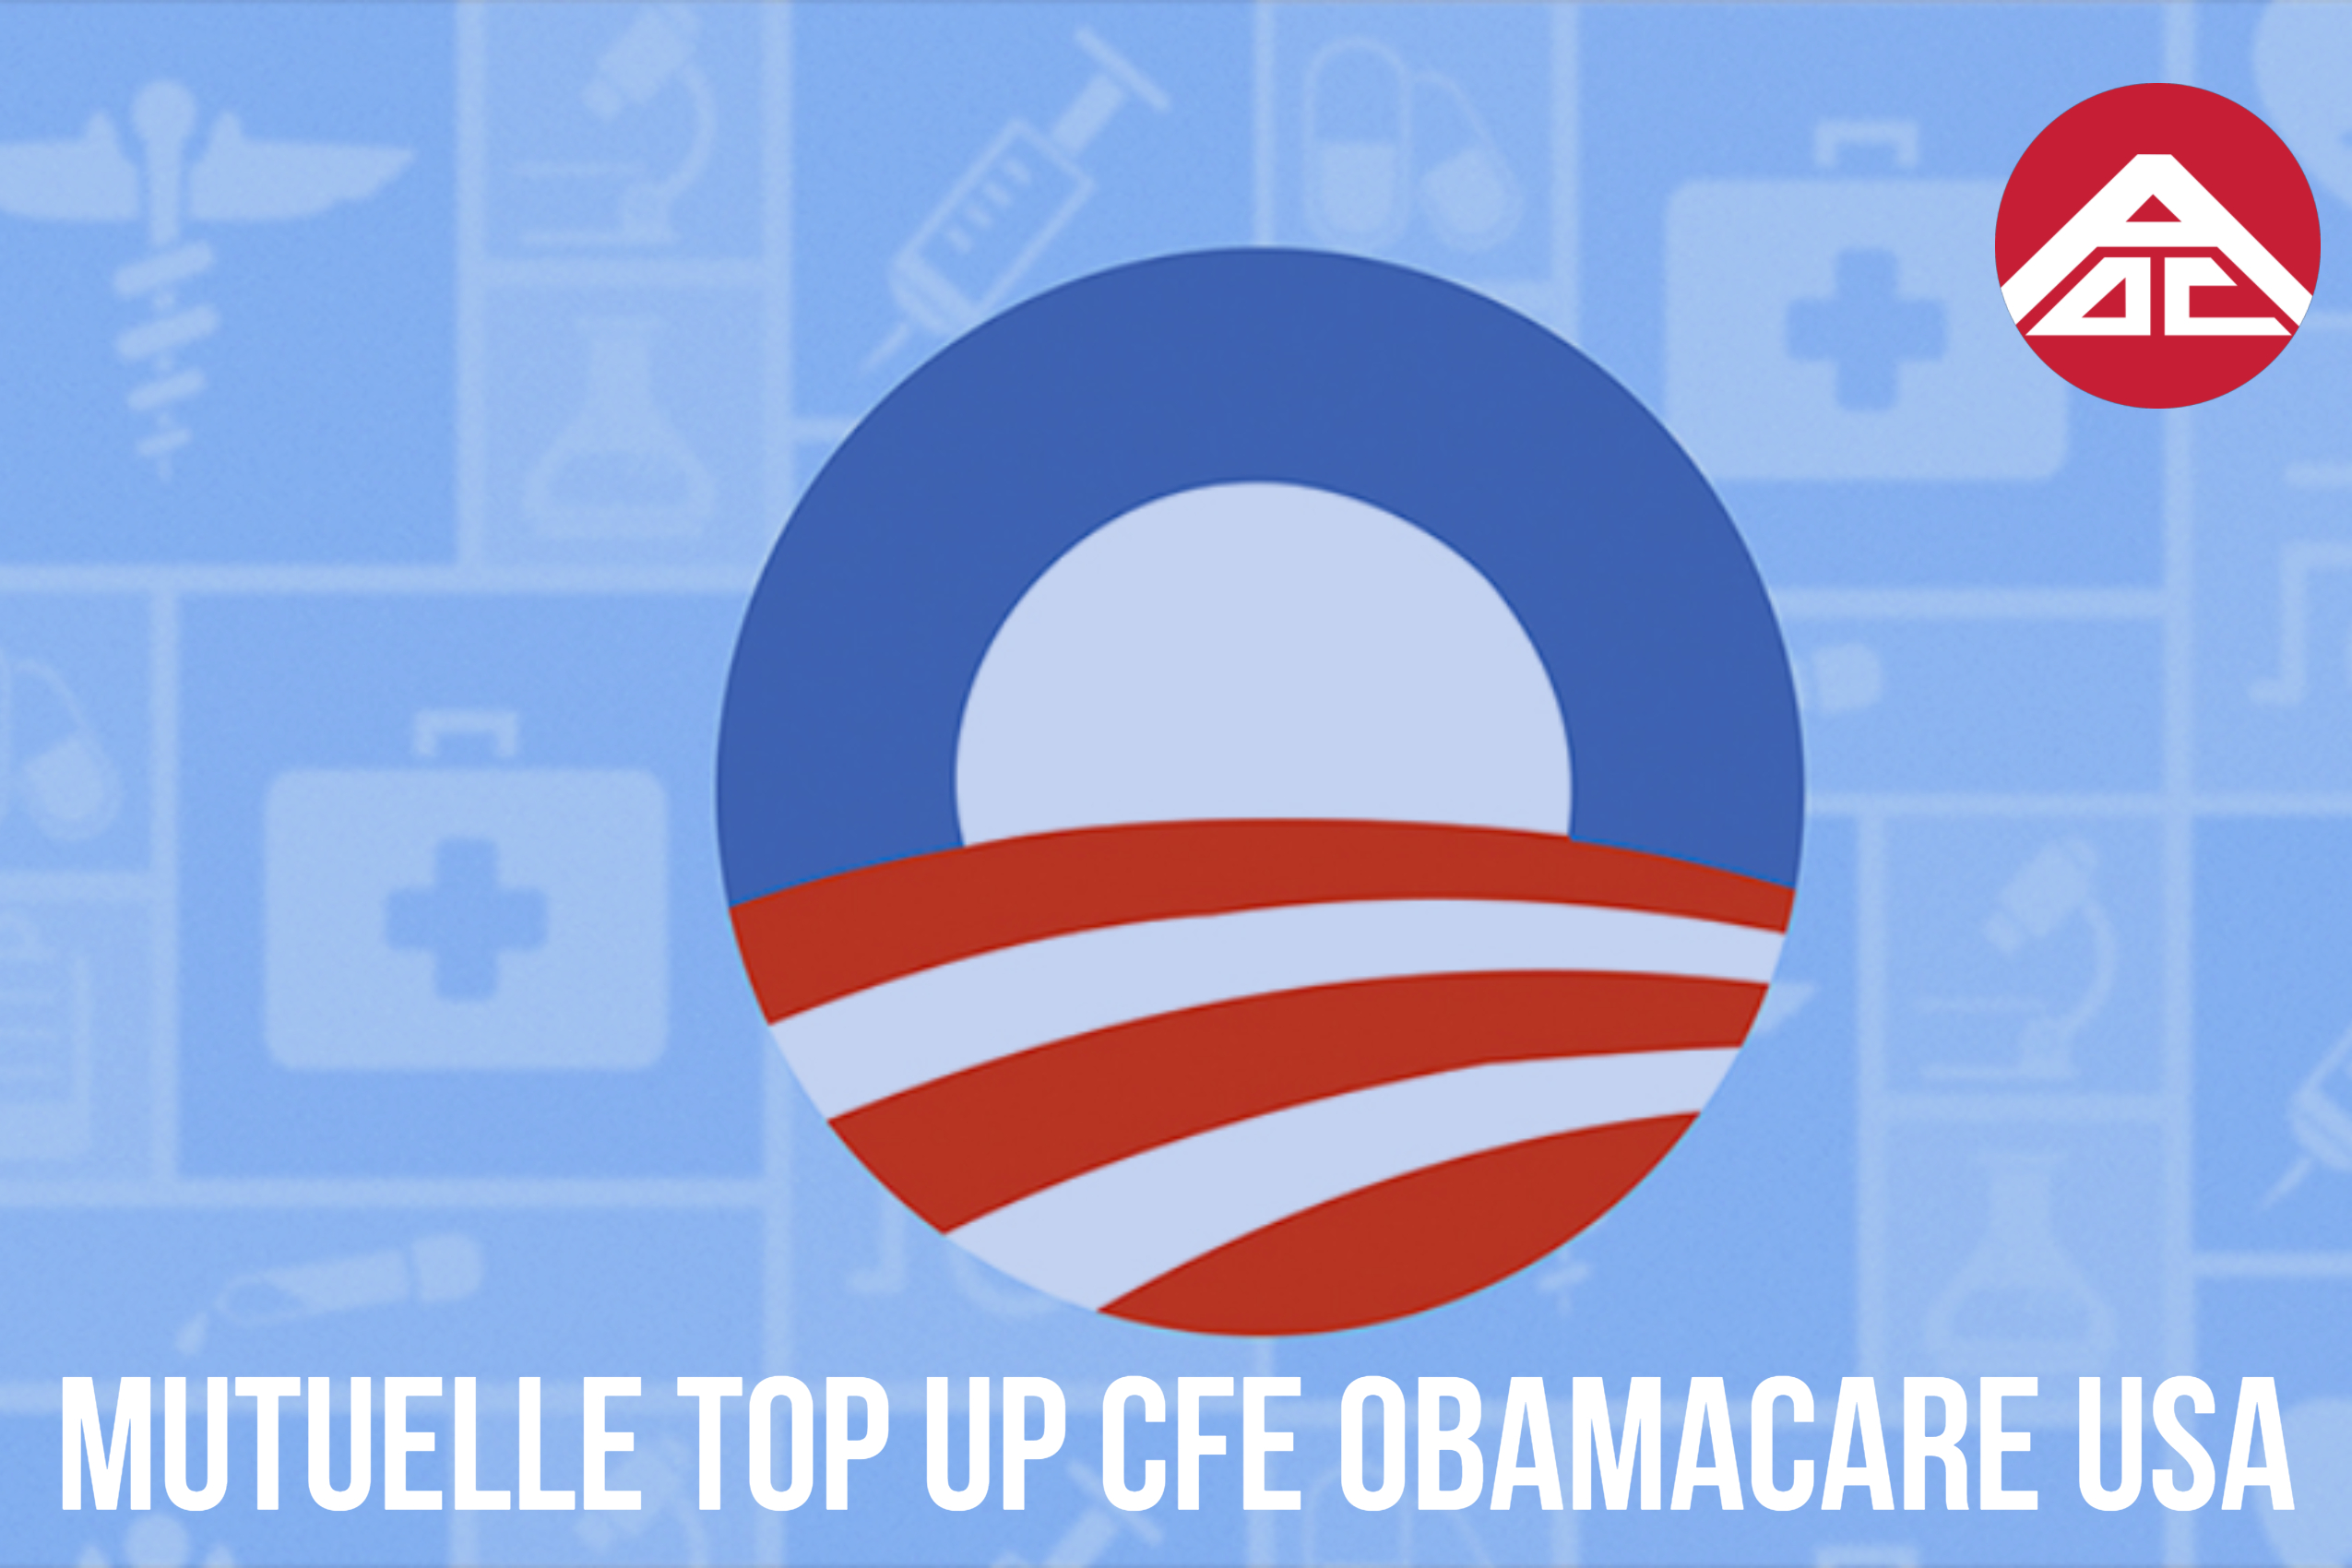 aoc_assurance_mutuelle_top_cfe_obamacare_usa.jpg